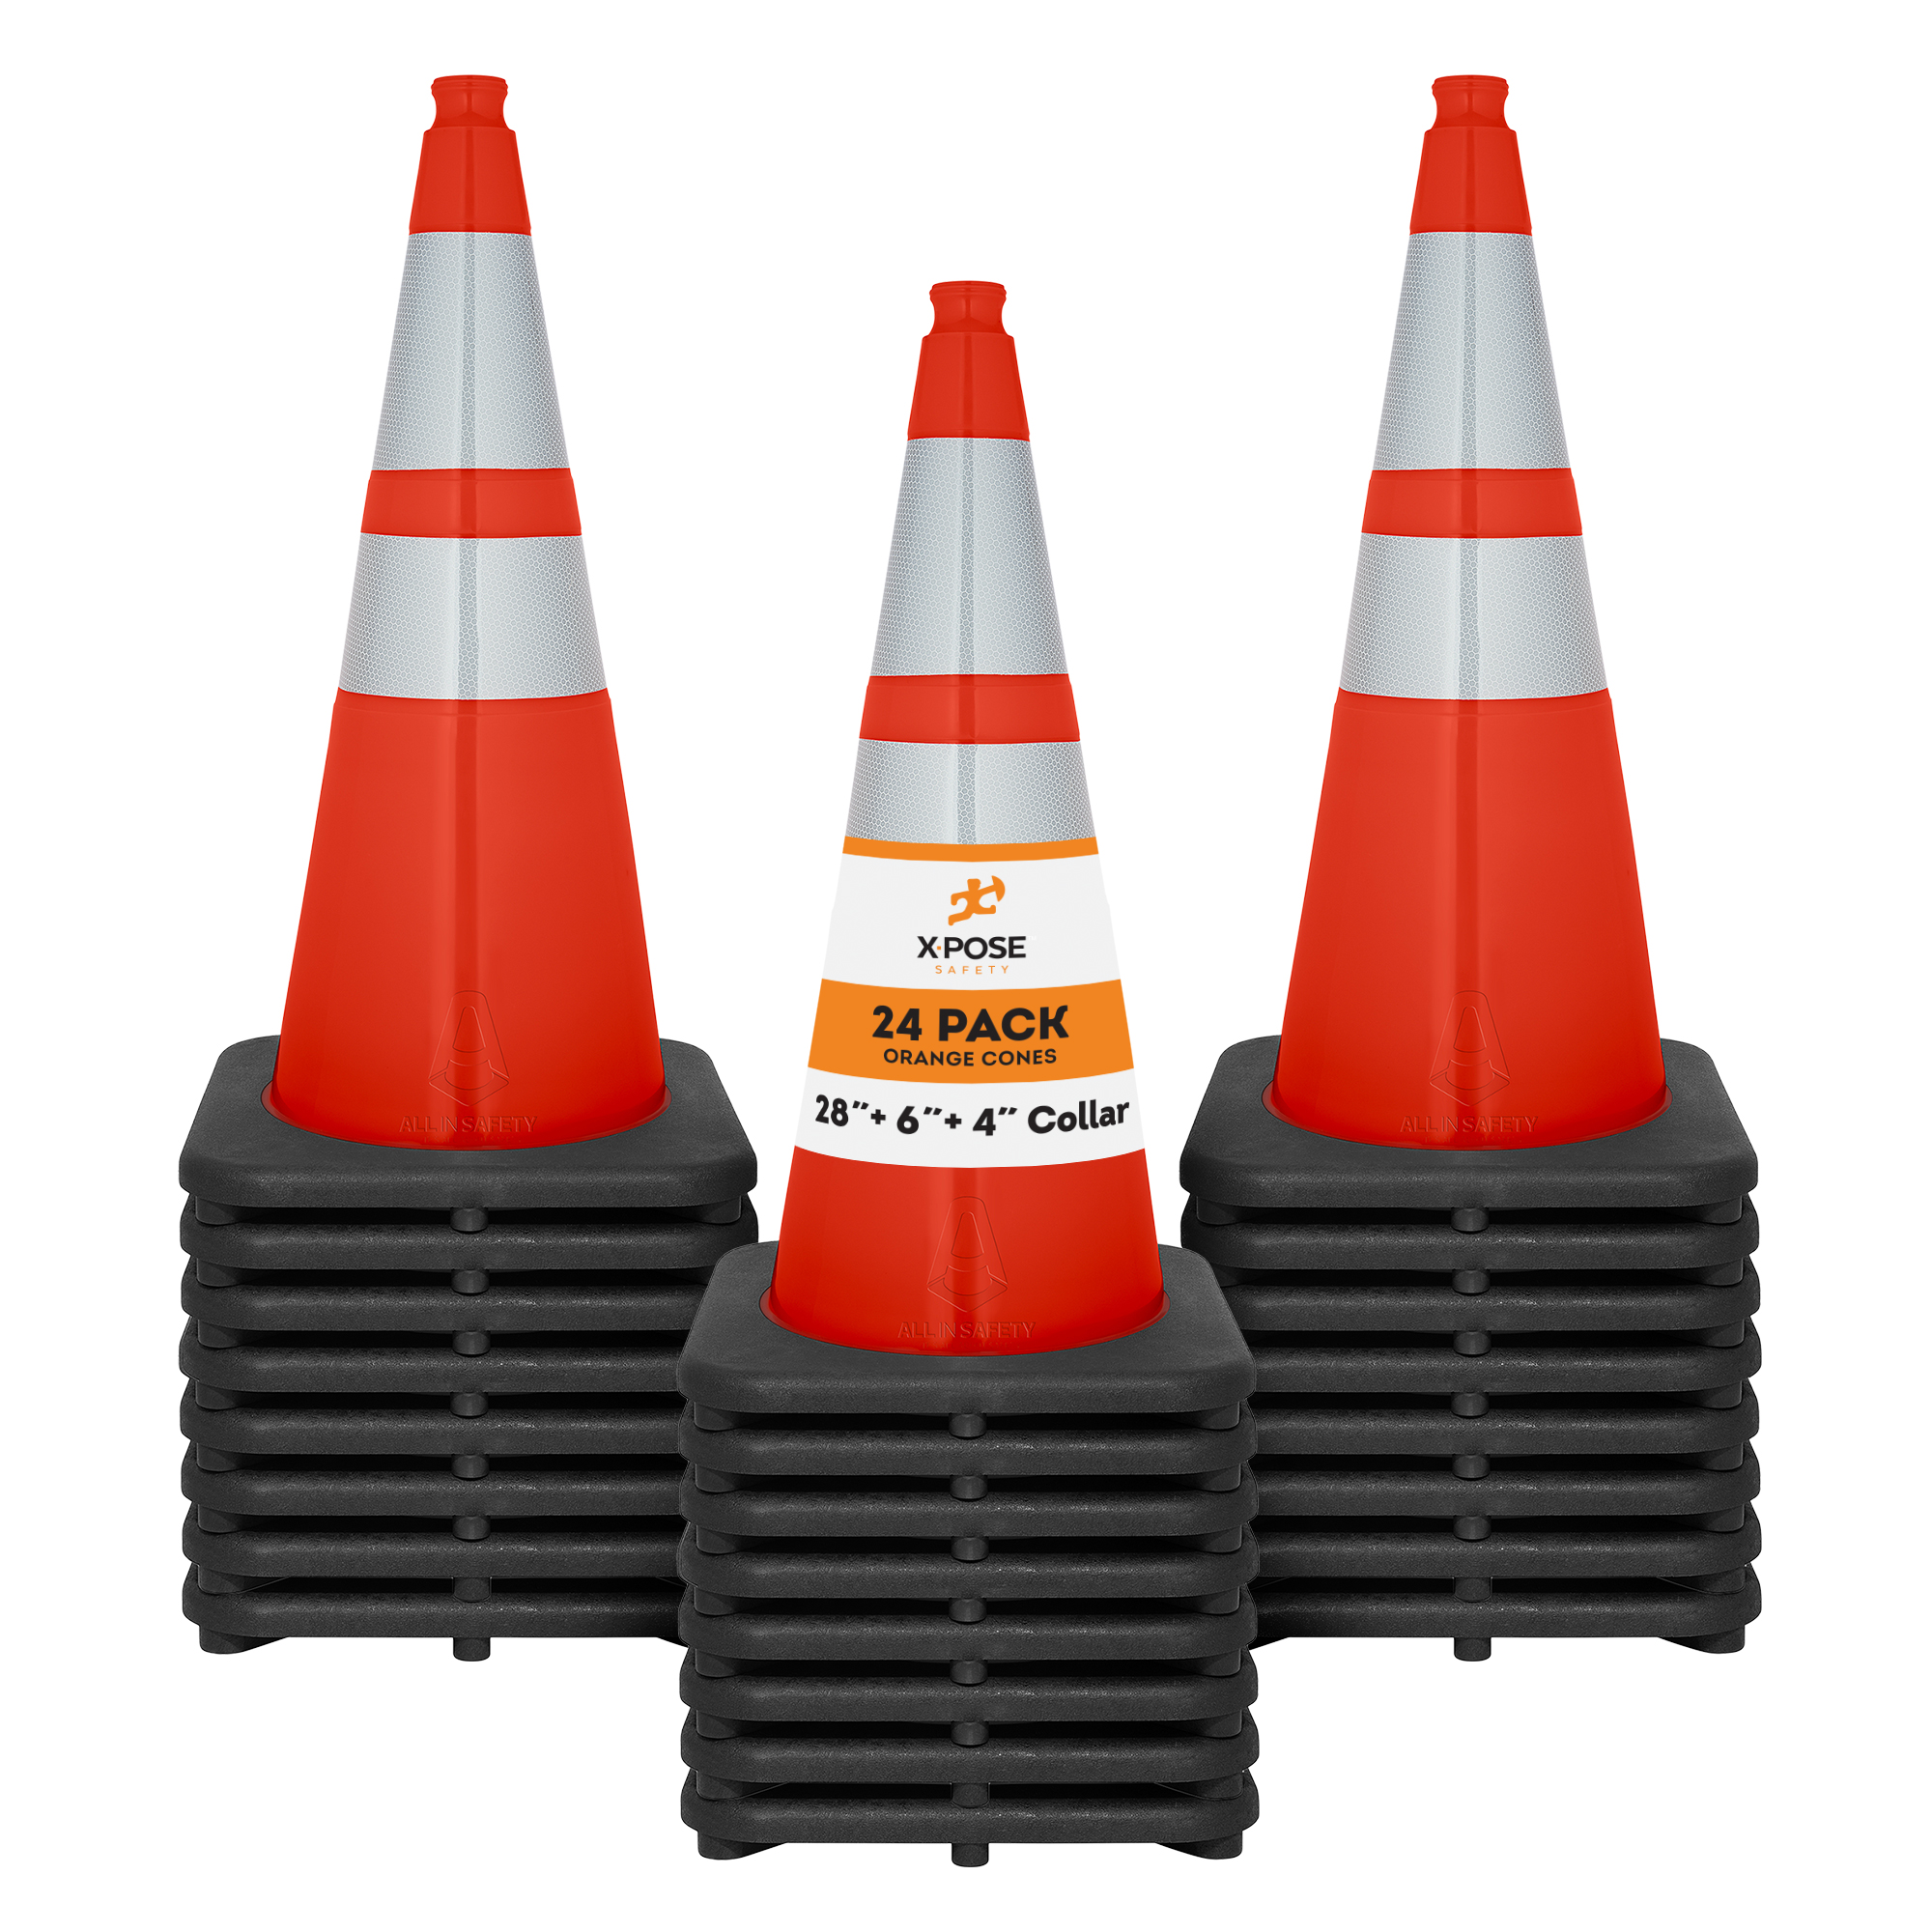 24 Of Orange Traffic Cones 28 Inch With 6 4 Collar Pvc Plastic Safety Cone Ebay